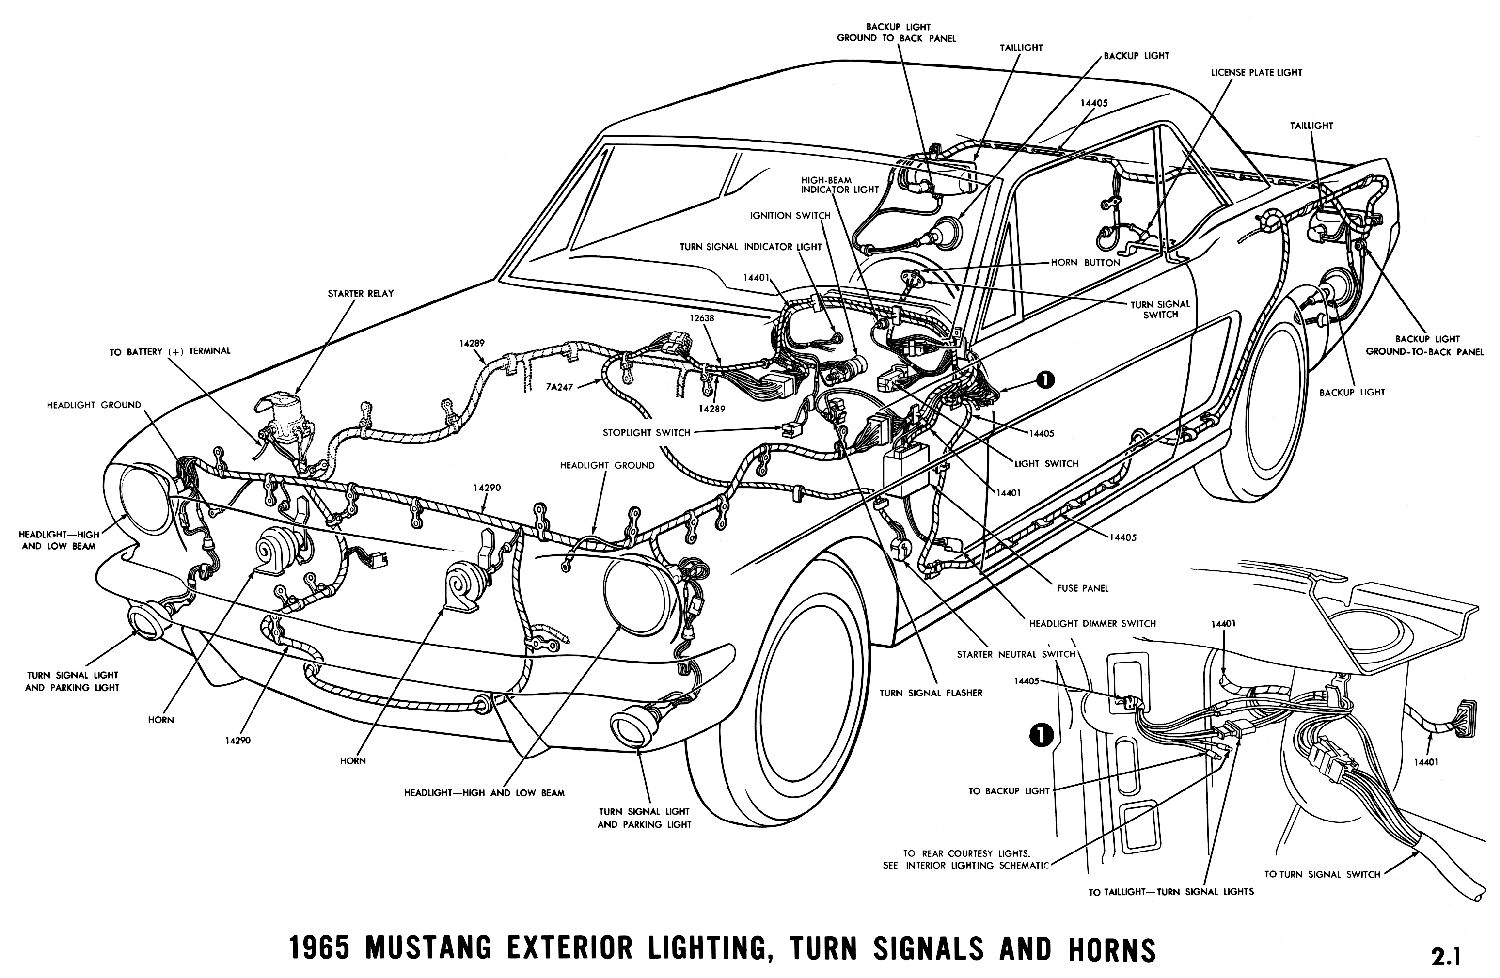 1965d 1965 mustang wiring diagrams average joe restoration 1970 mustang wiring diagram pdf at bakdesigns.co